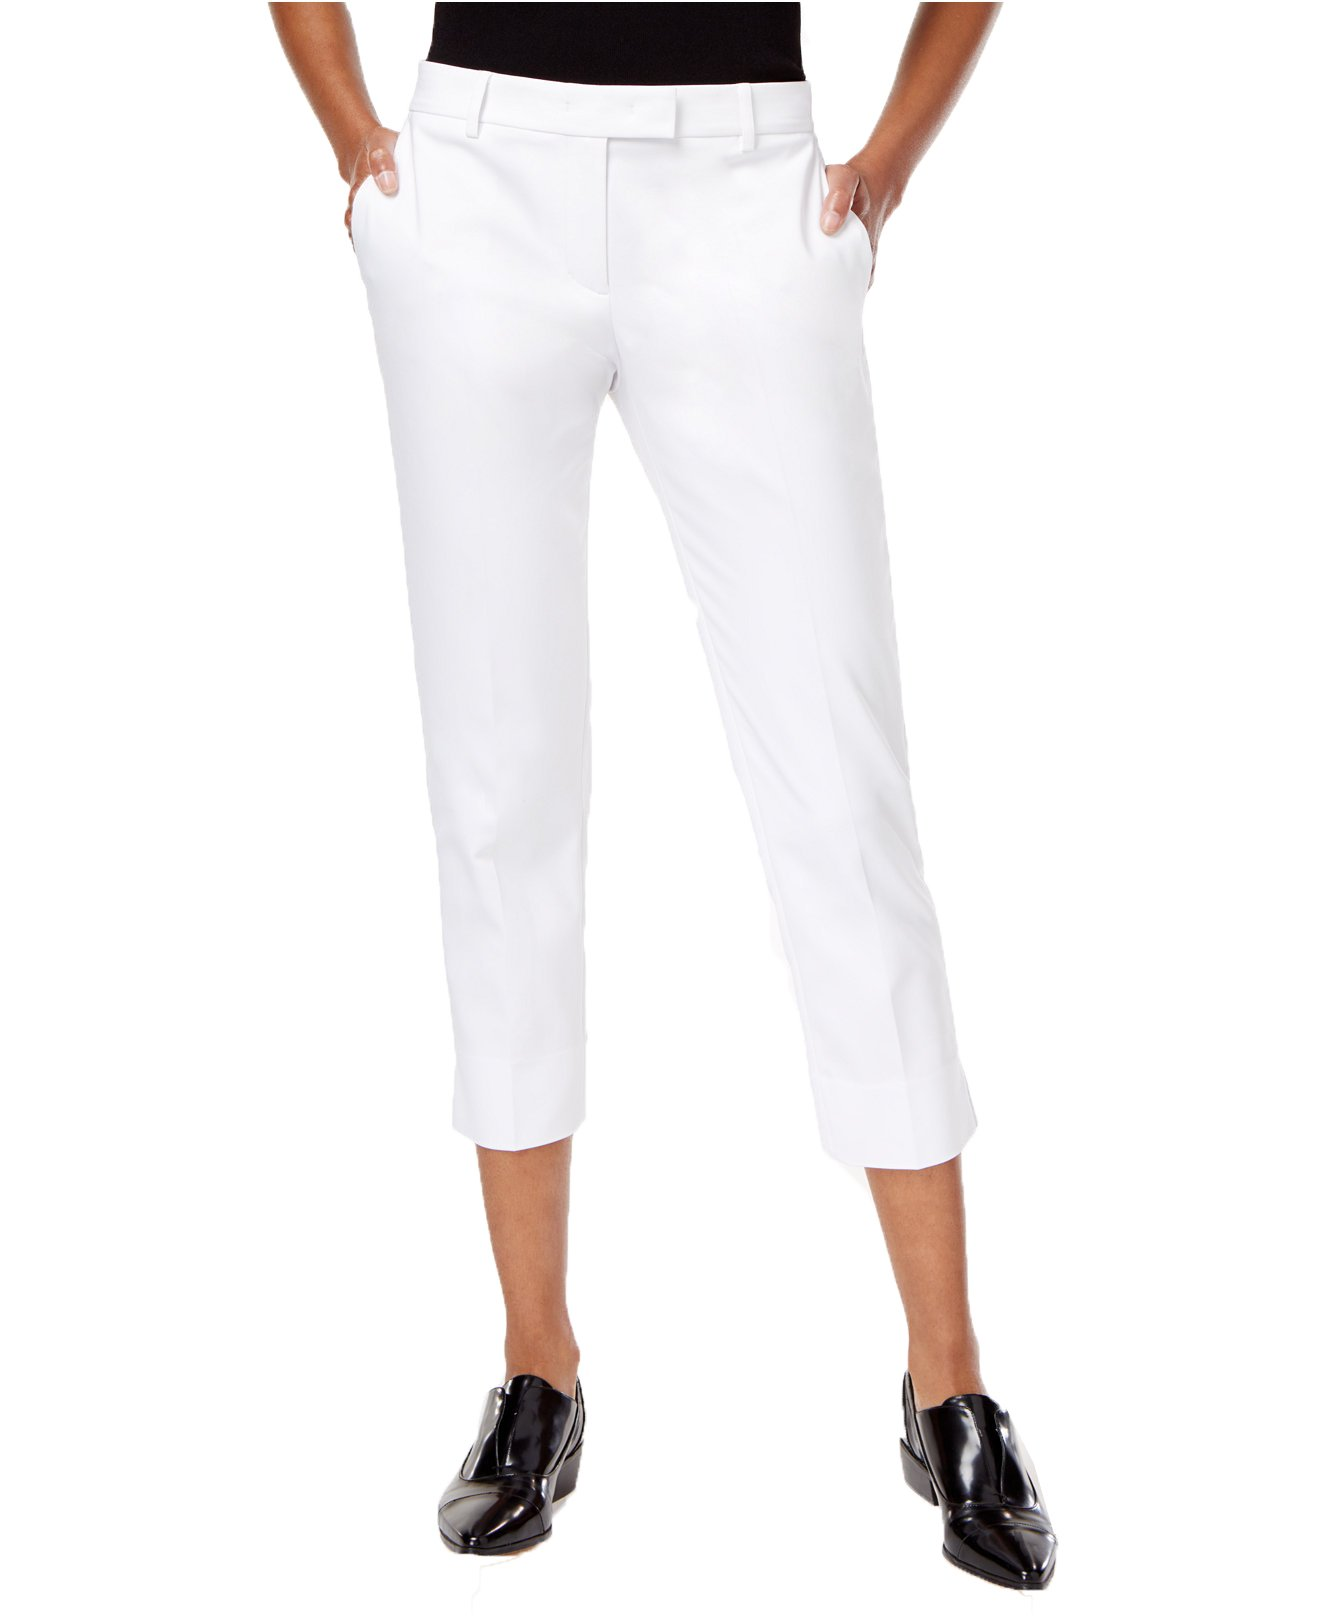 DKNY Women's Cropped Straight-Leg Pants (12, White)